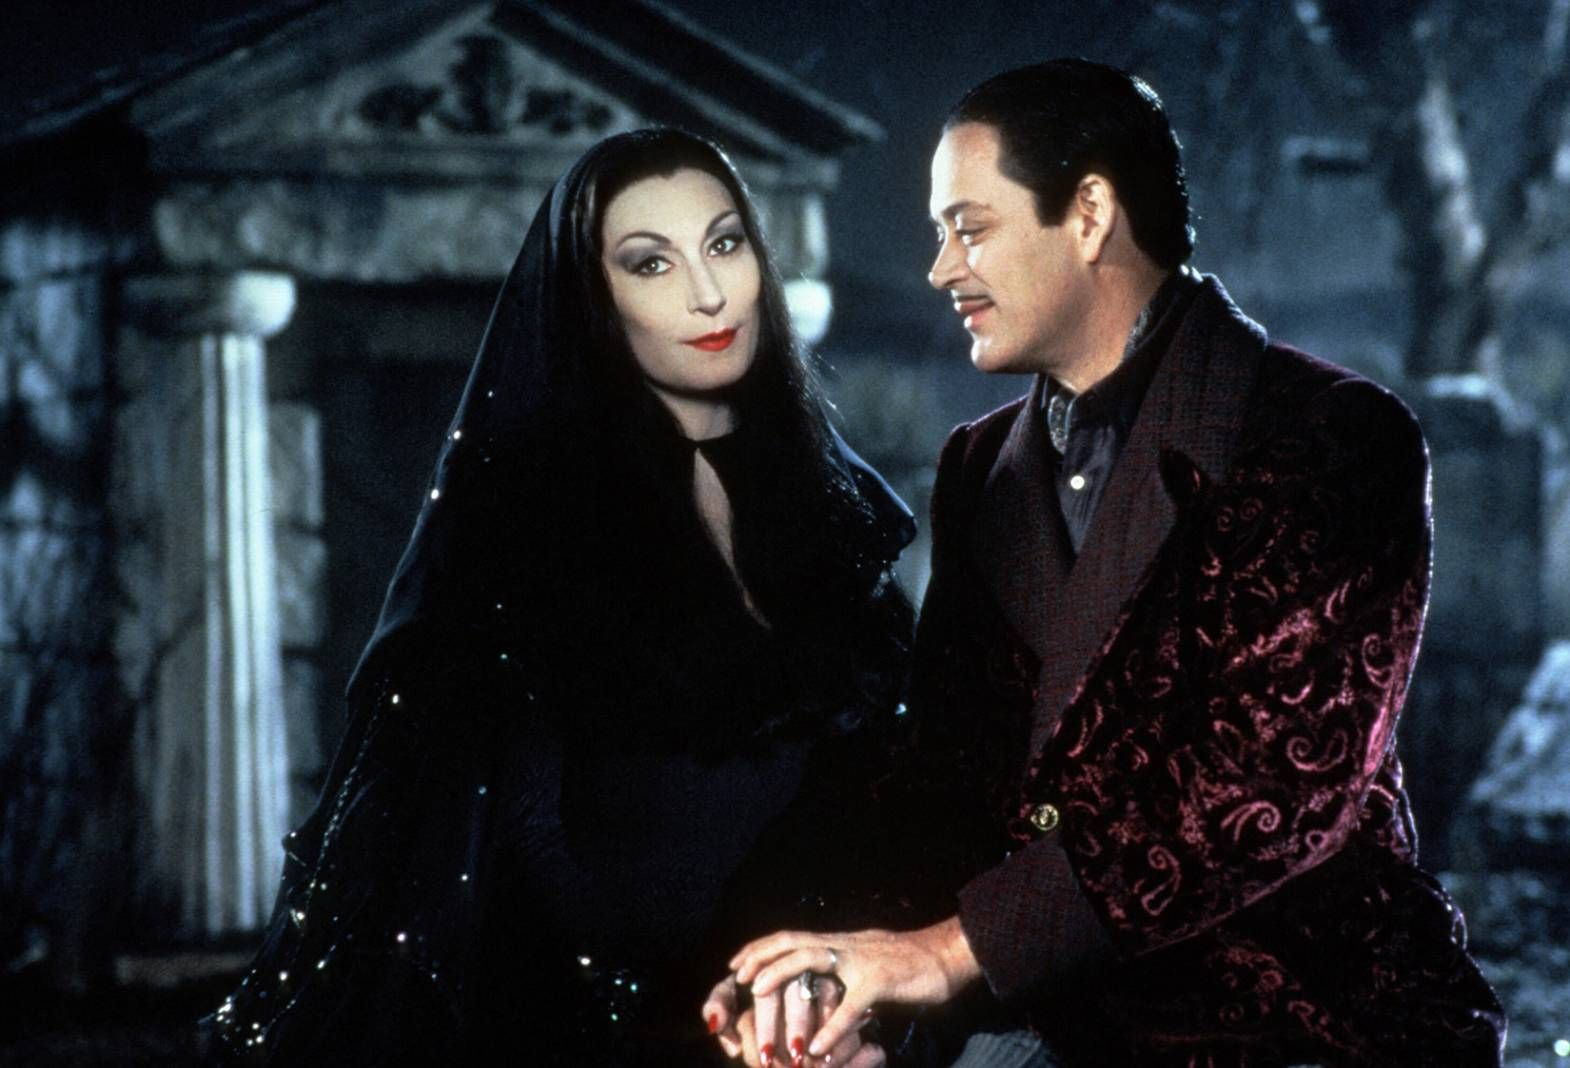 raul julia and anjelica huston as gomez & morticia from the addams